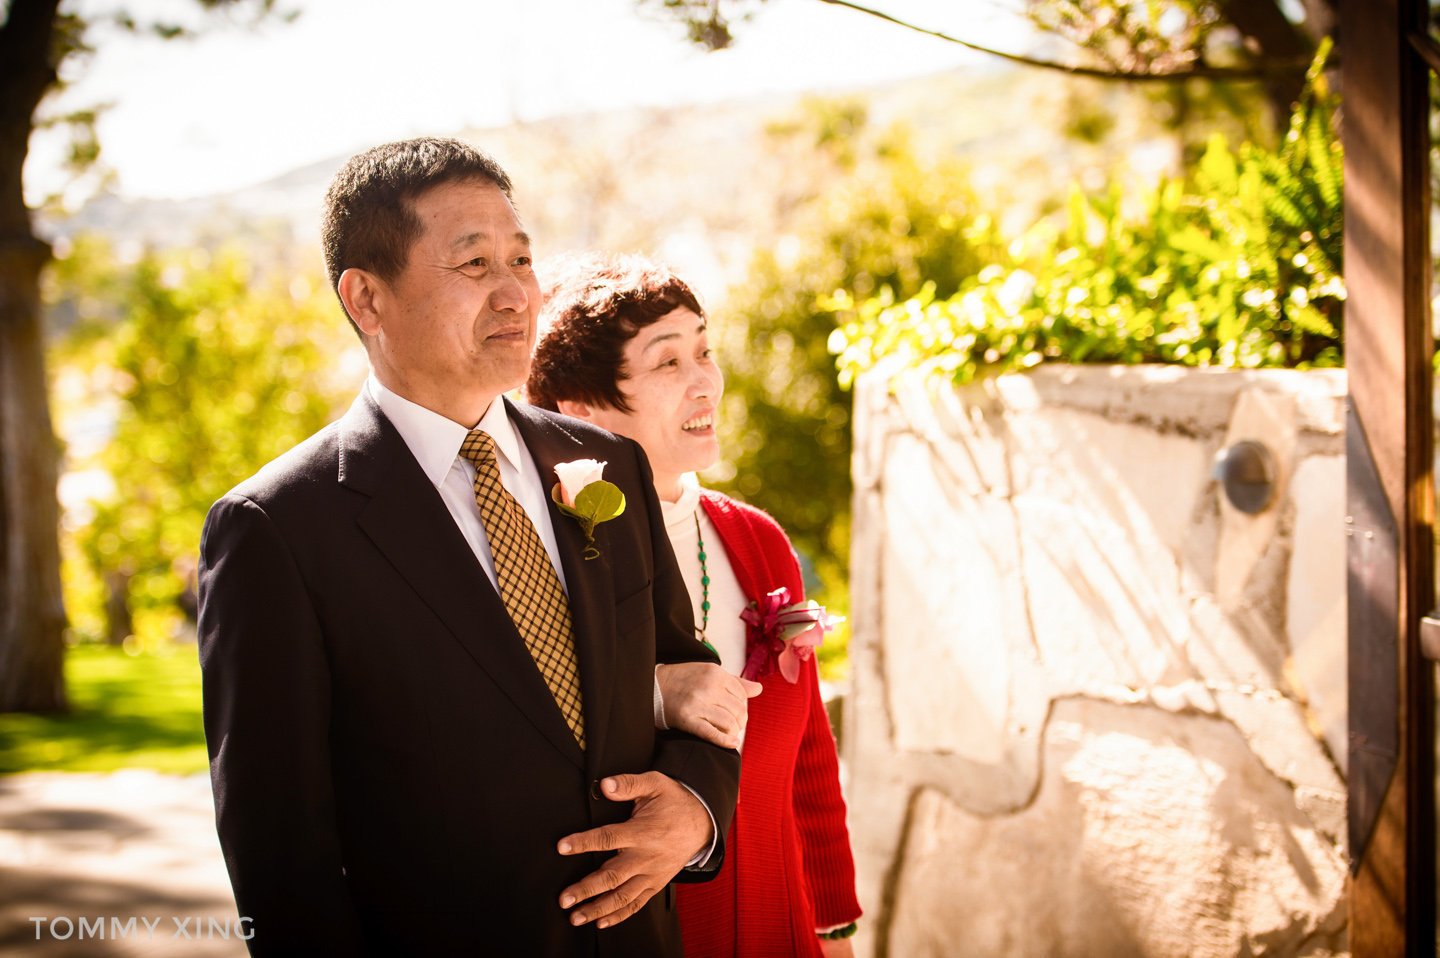 Los Angeles Wedding Photographer 洛杉矶婚礼婚纱摄影师 Tommy Xing-101.JPG